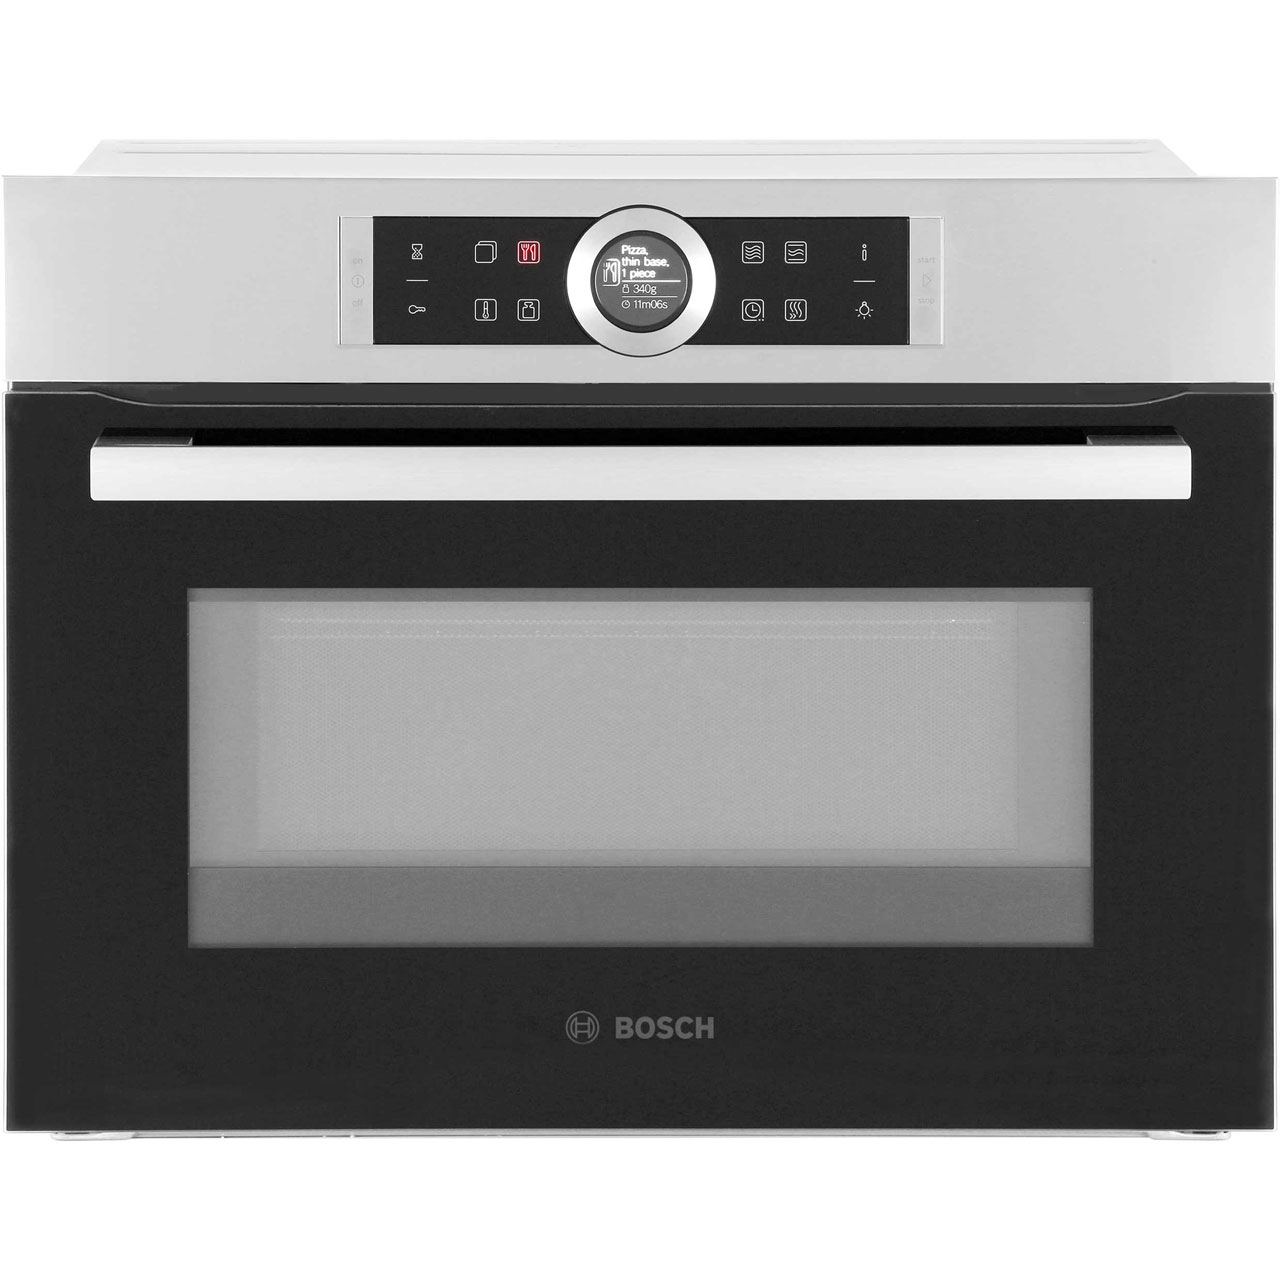 Bosch Microwave Bosch Serie 8 Cmg633bs1b Built In Compact Electric Single Oven With Microwave Function Brushed Steel